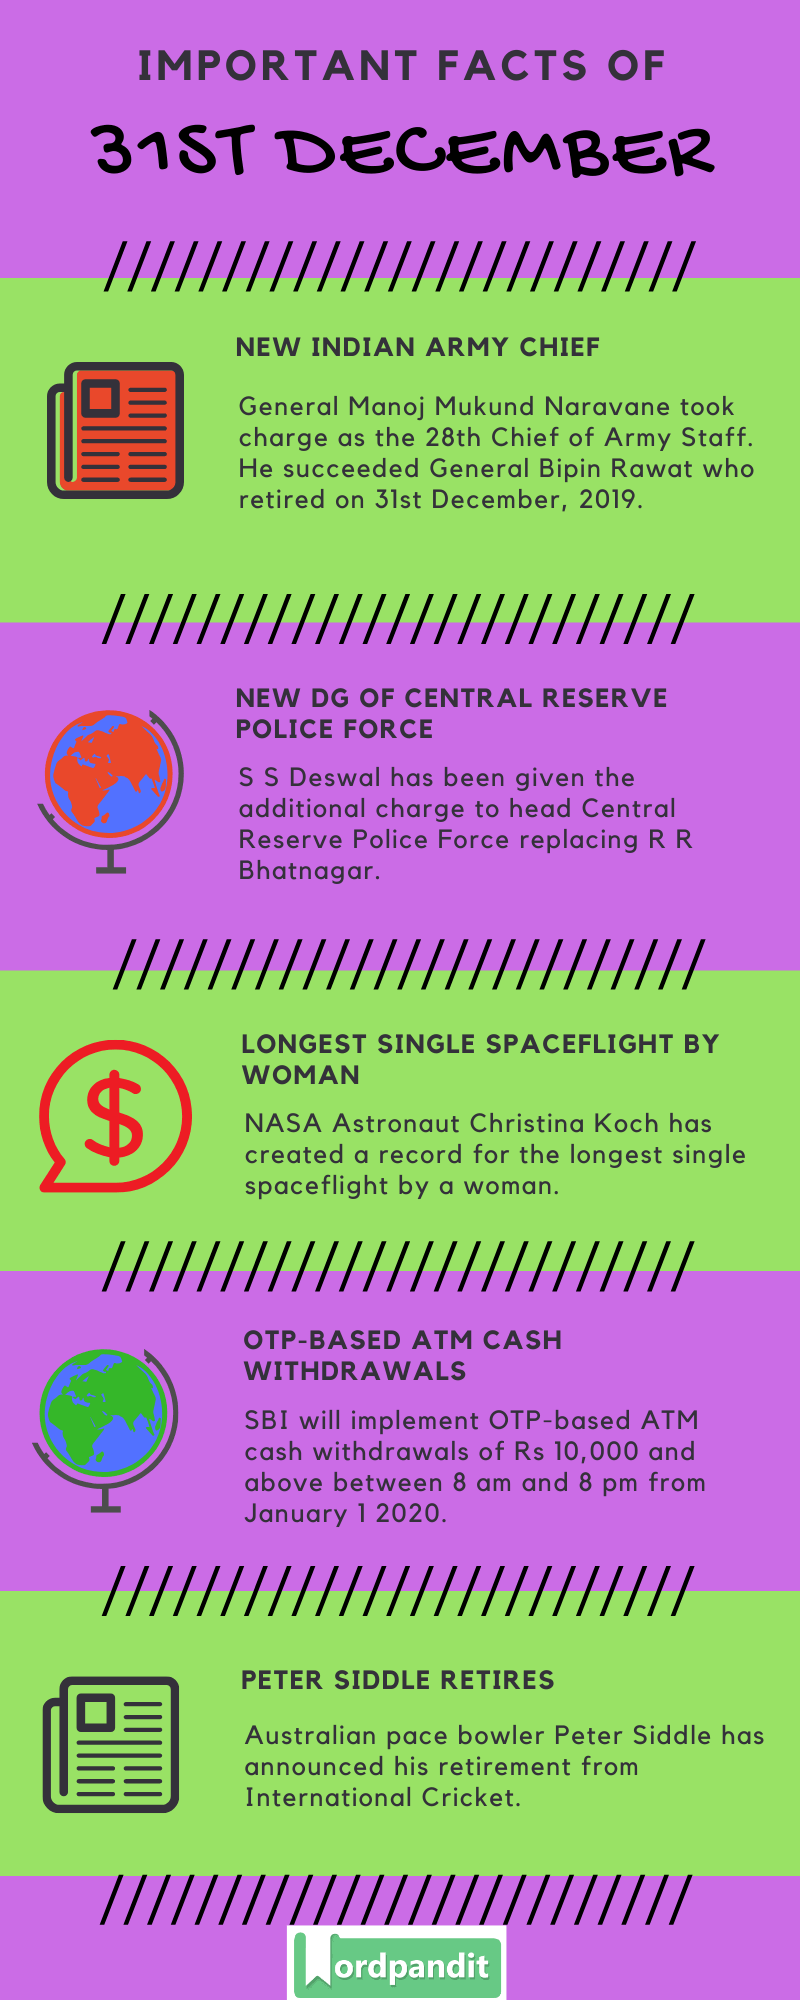 Daily Current Affairs 31 December 2019 Current Affairs Quiz 31 December 2019 Current Affairs Infographic